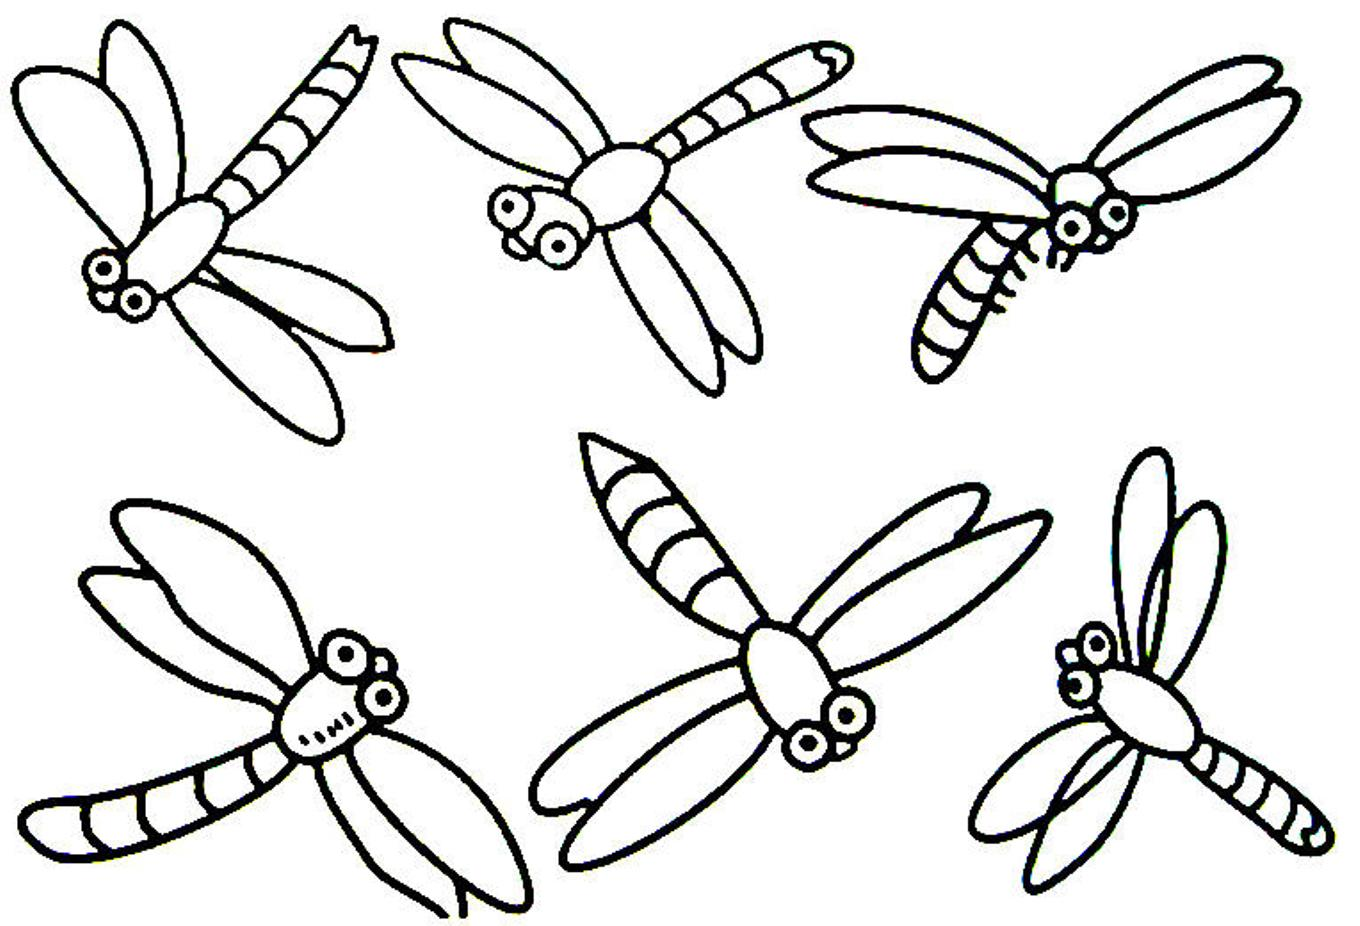 Coloring in dragonflies - Coloring In Dragonflies Dragonflies Coloring Pages Jpg 1360x926 Cartoon Dragonfly Coloring Pages